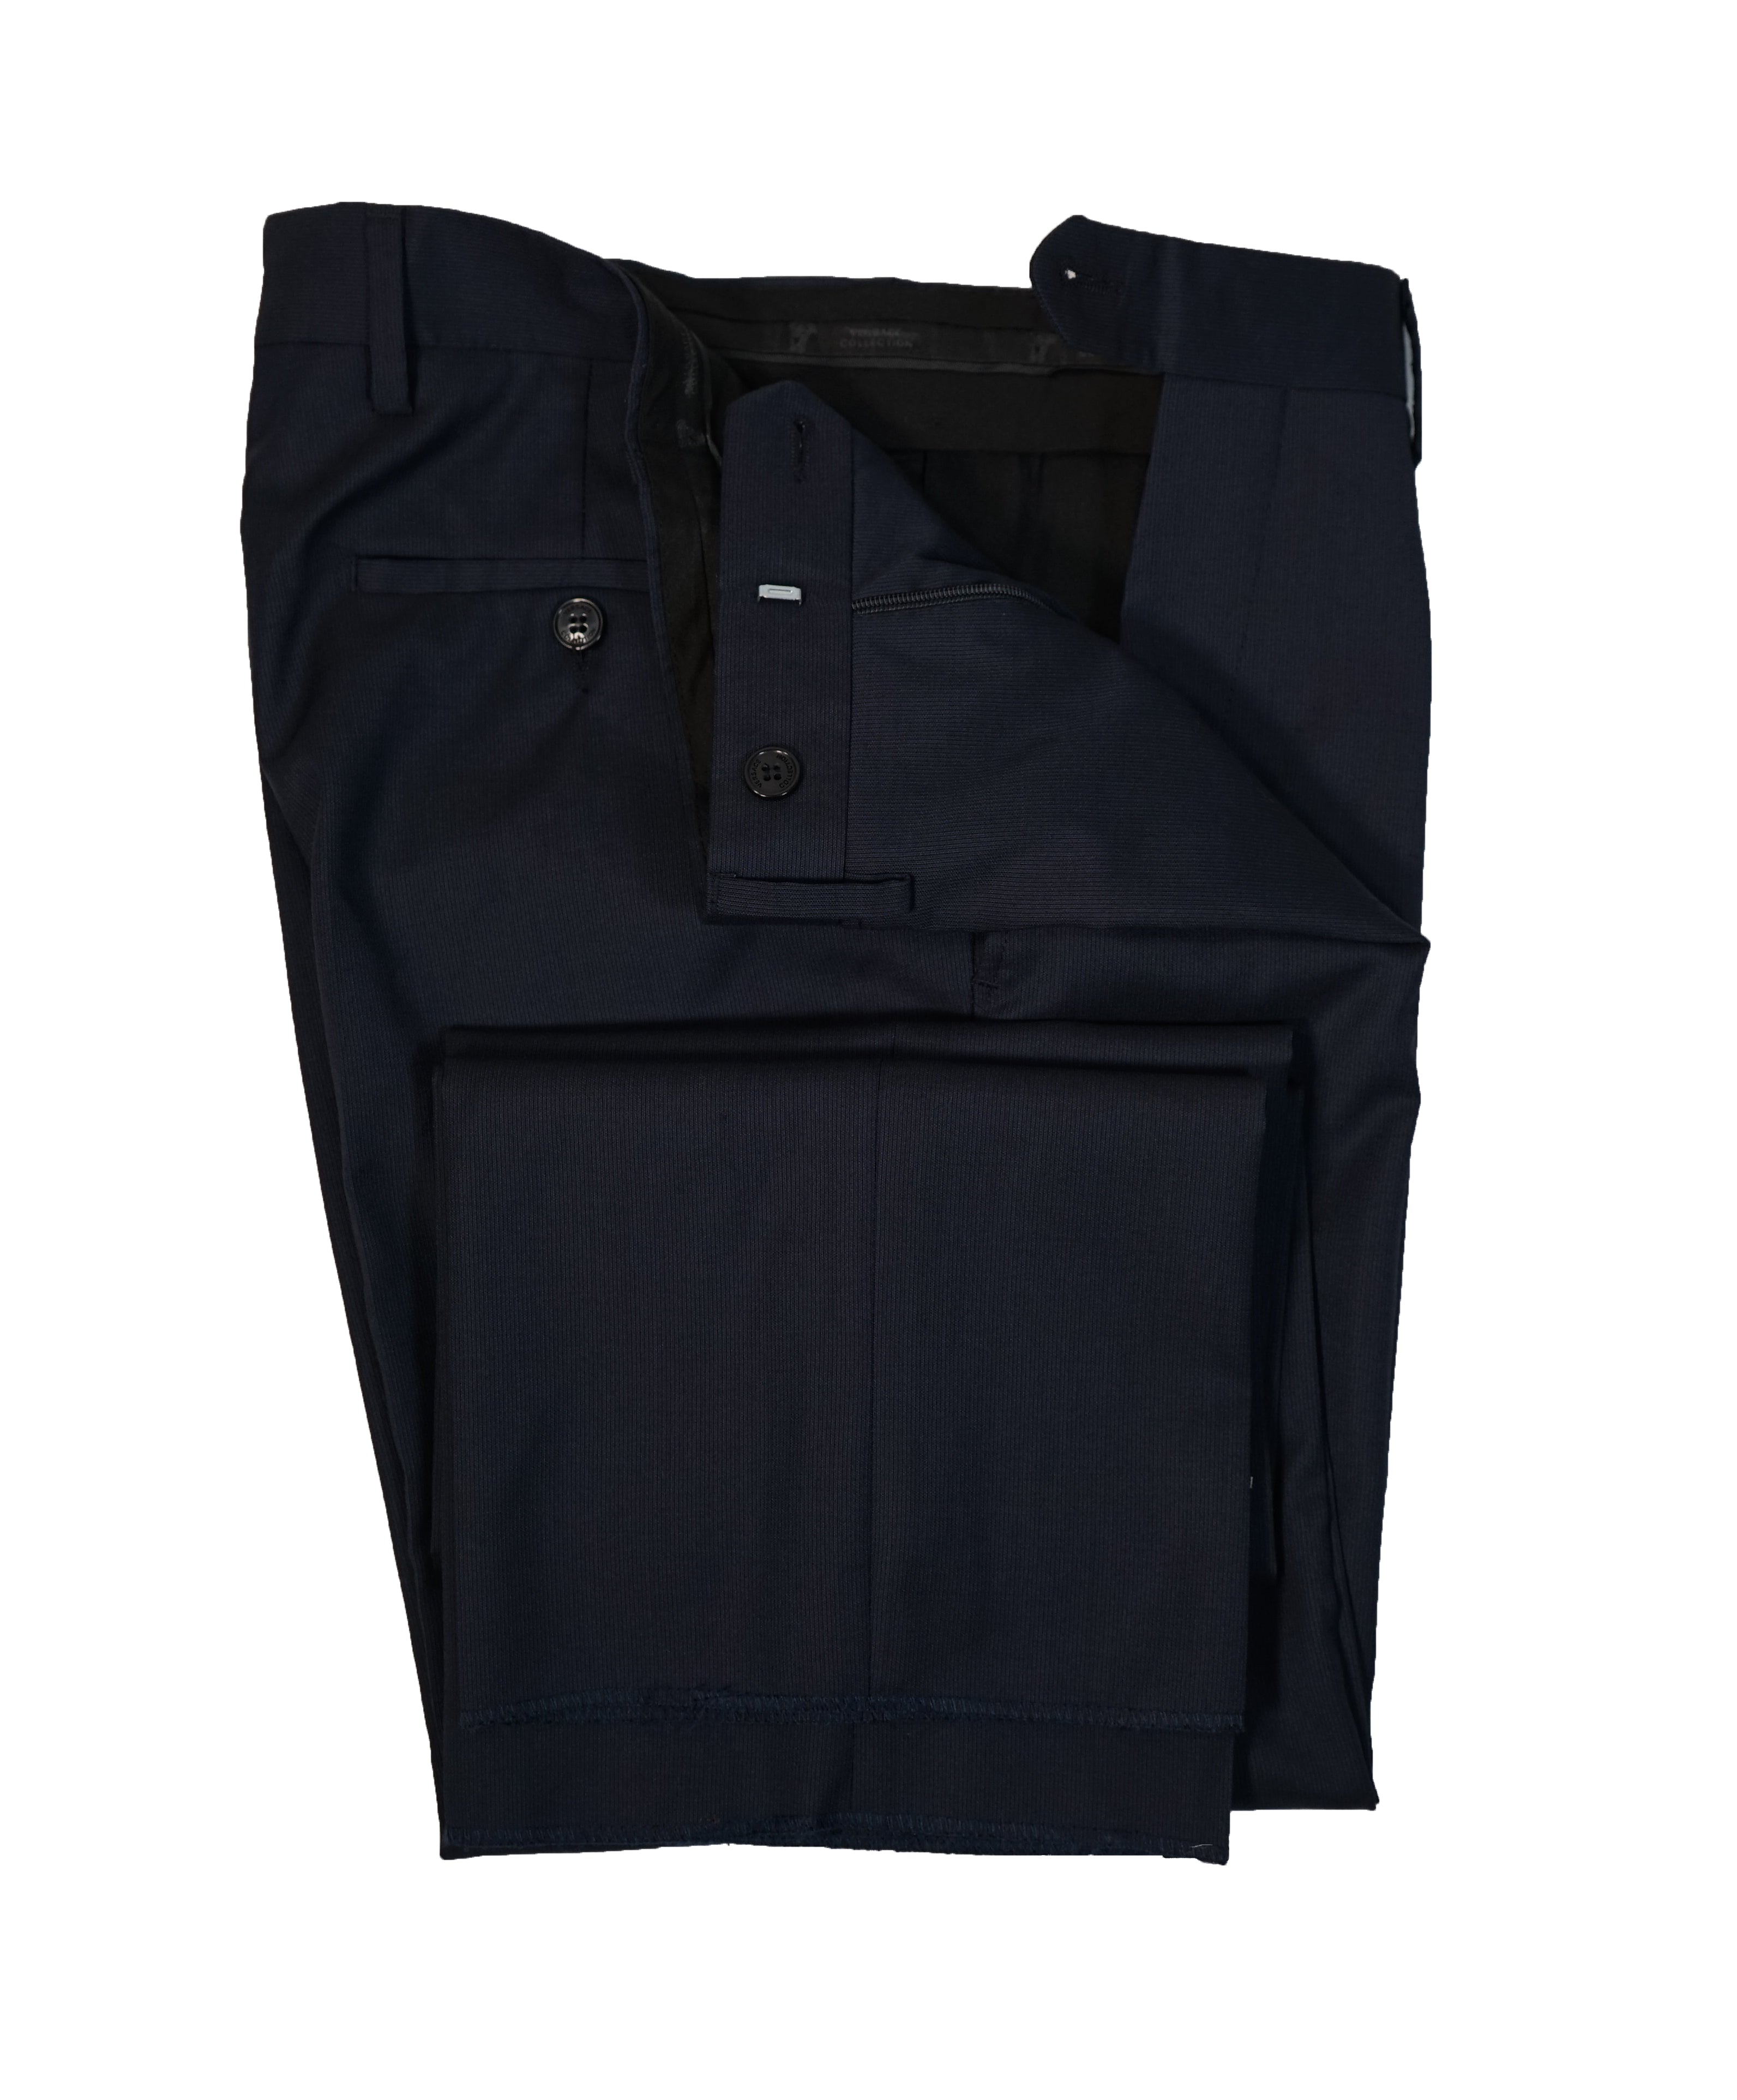 VERSACE COLLECTION - Flat Front Navy Micro Stripe Dress Pants - 30W